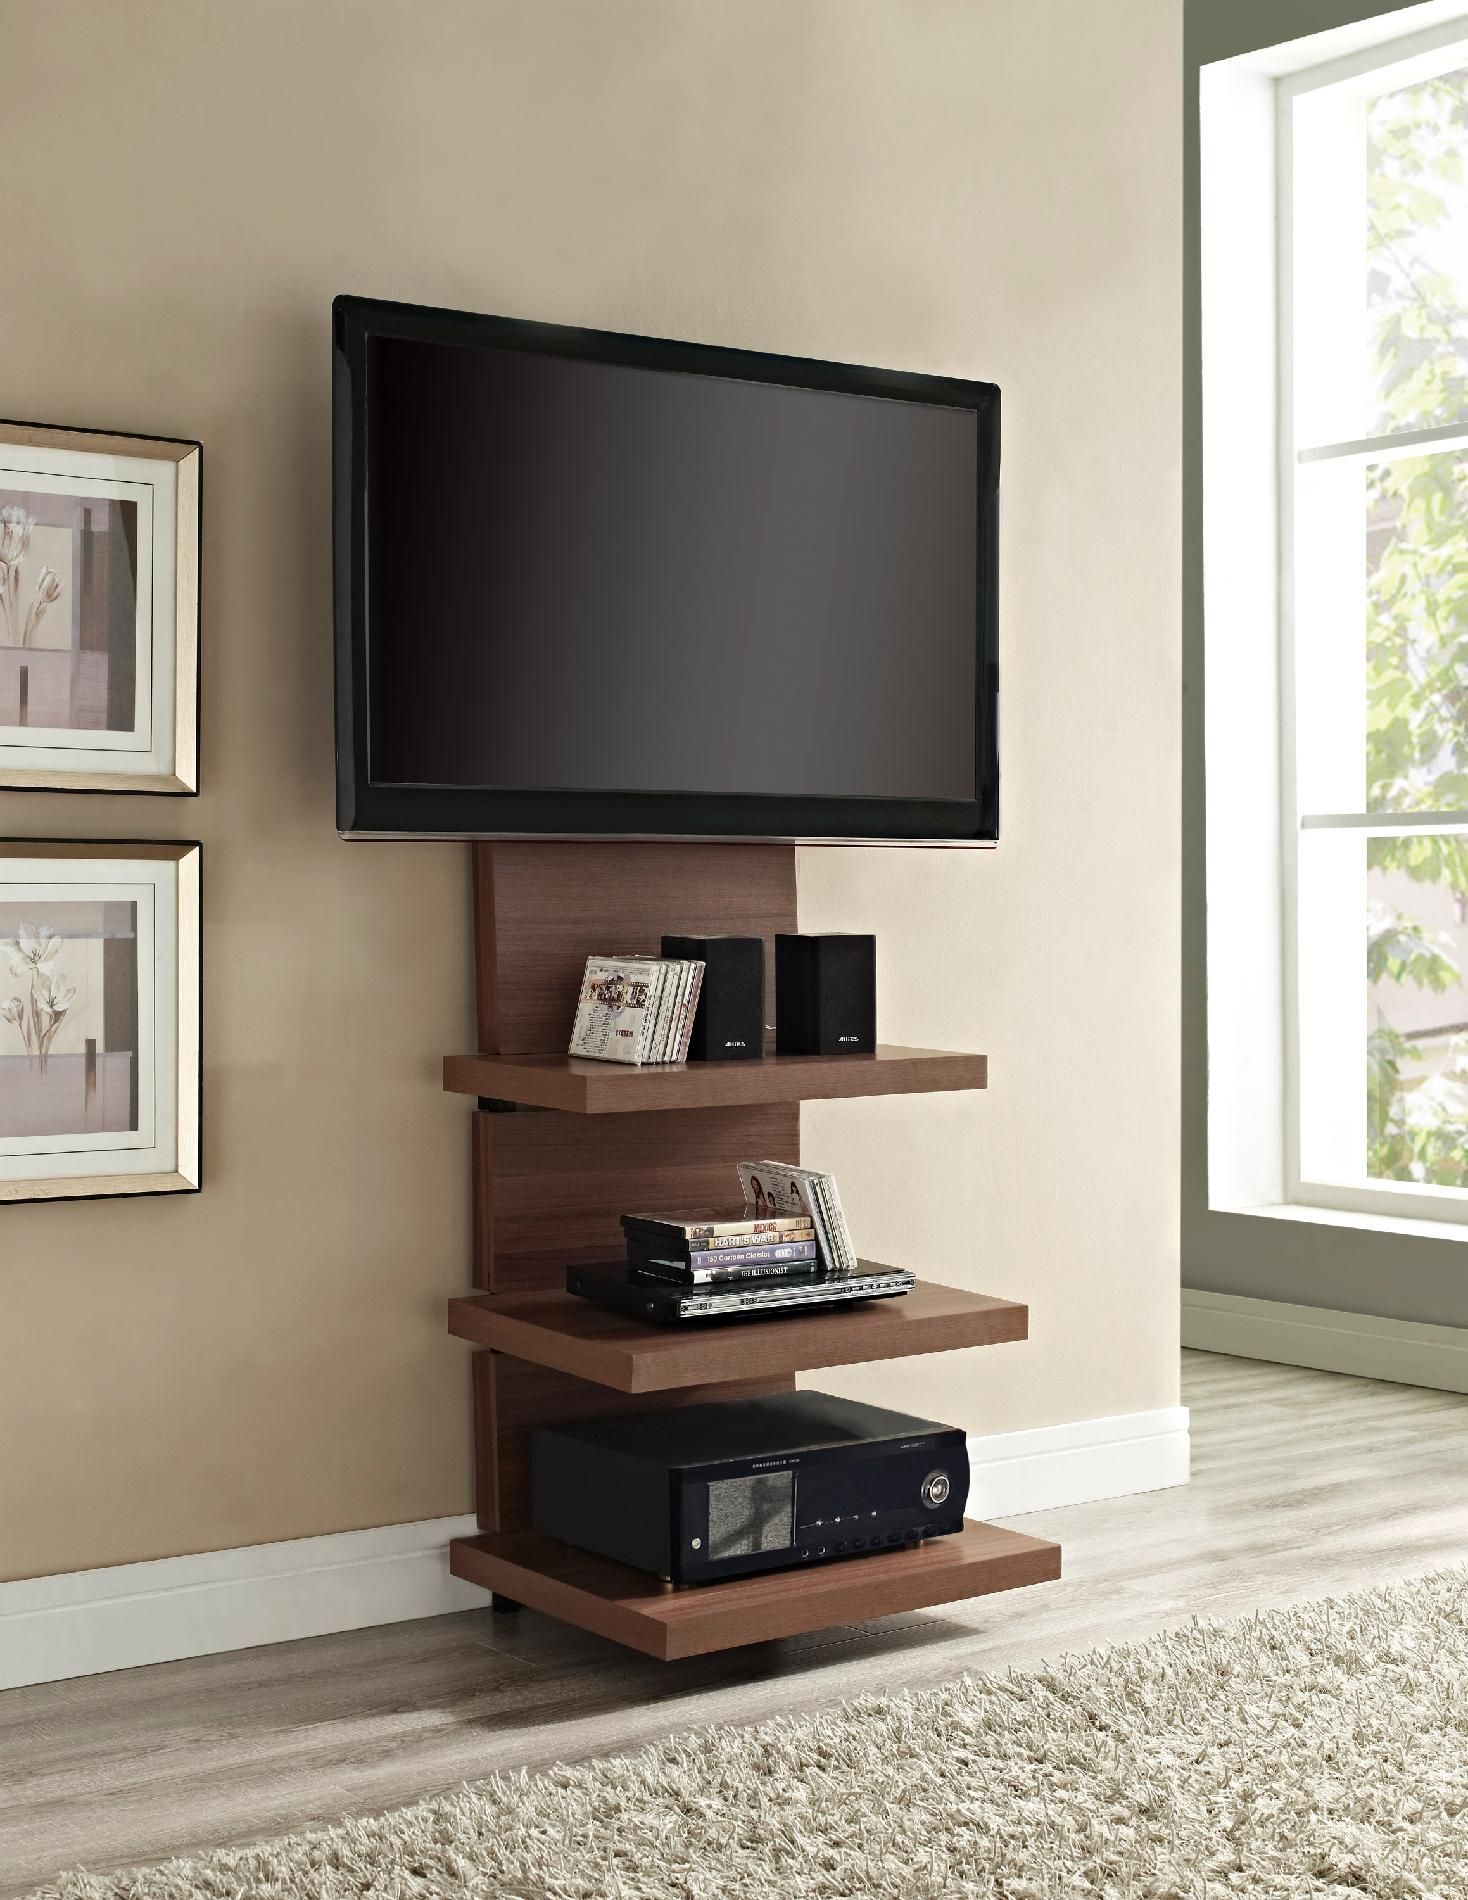 18 chic and modern tv wall mount ideas for living room dream home rh pinterest com home entertainment wiring home entertainment wiring ideas [ 1468 x 1900 Pixel ]